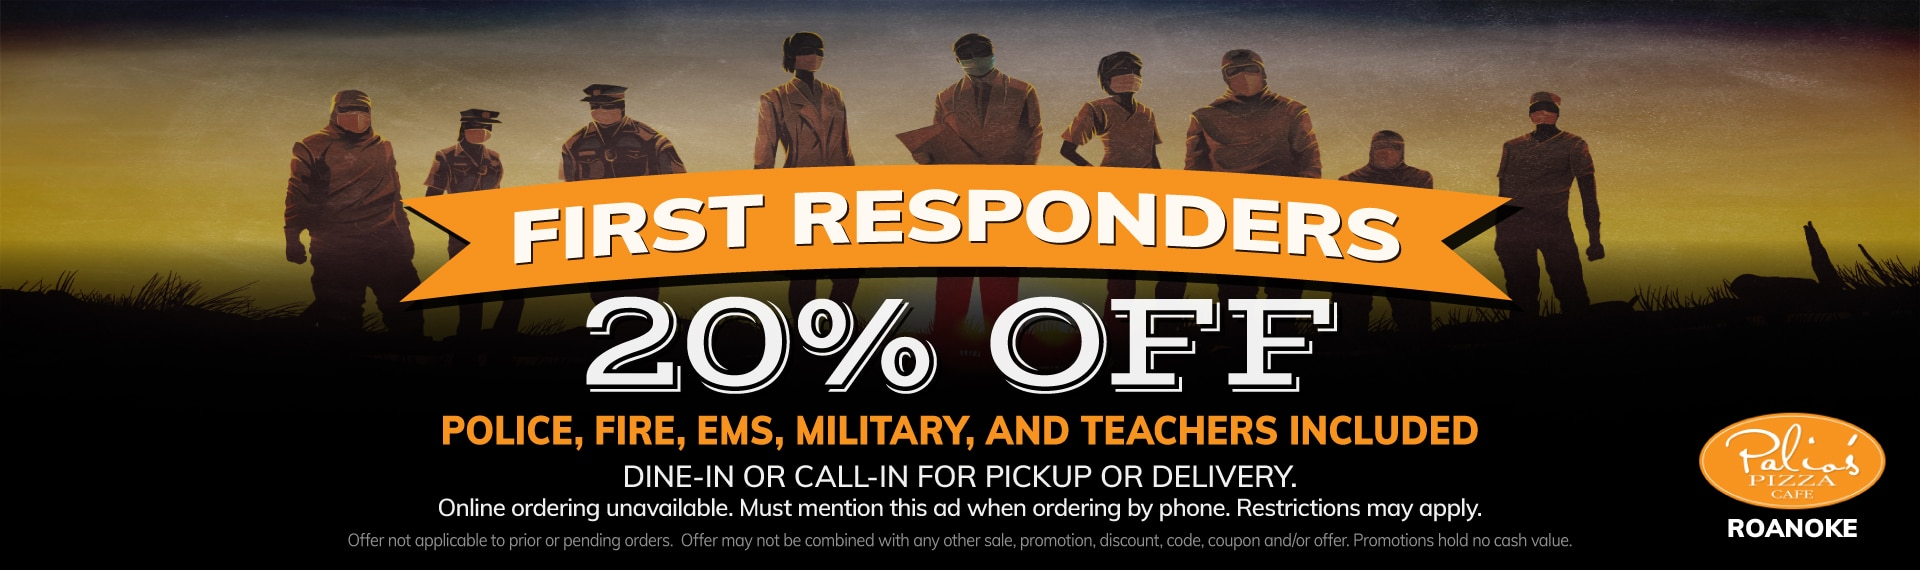 First Responders 20% Off